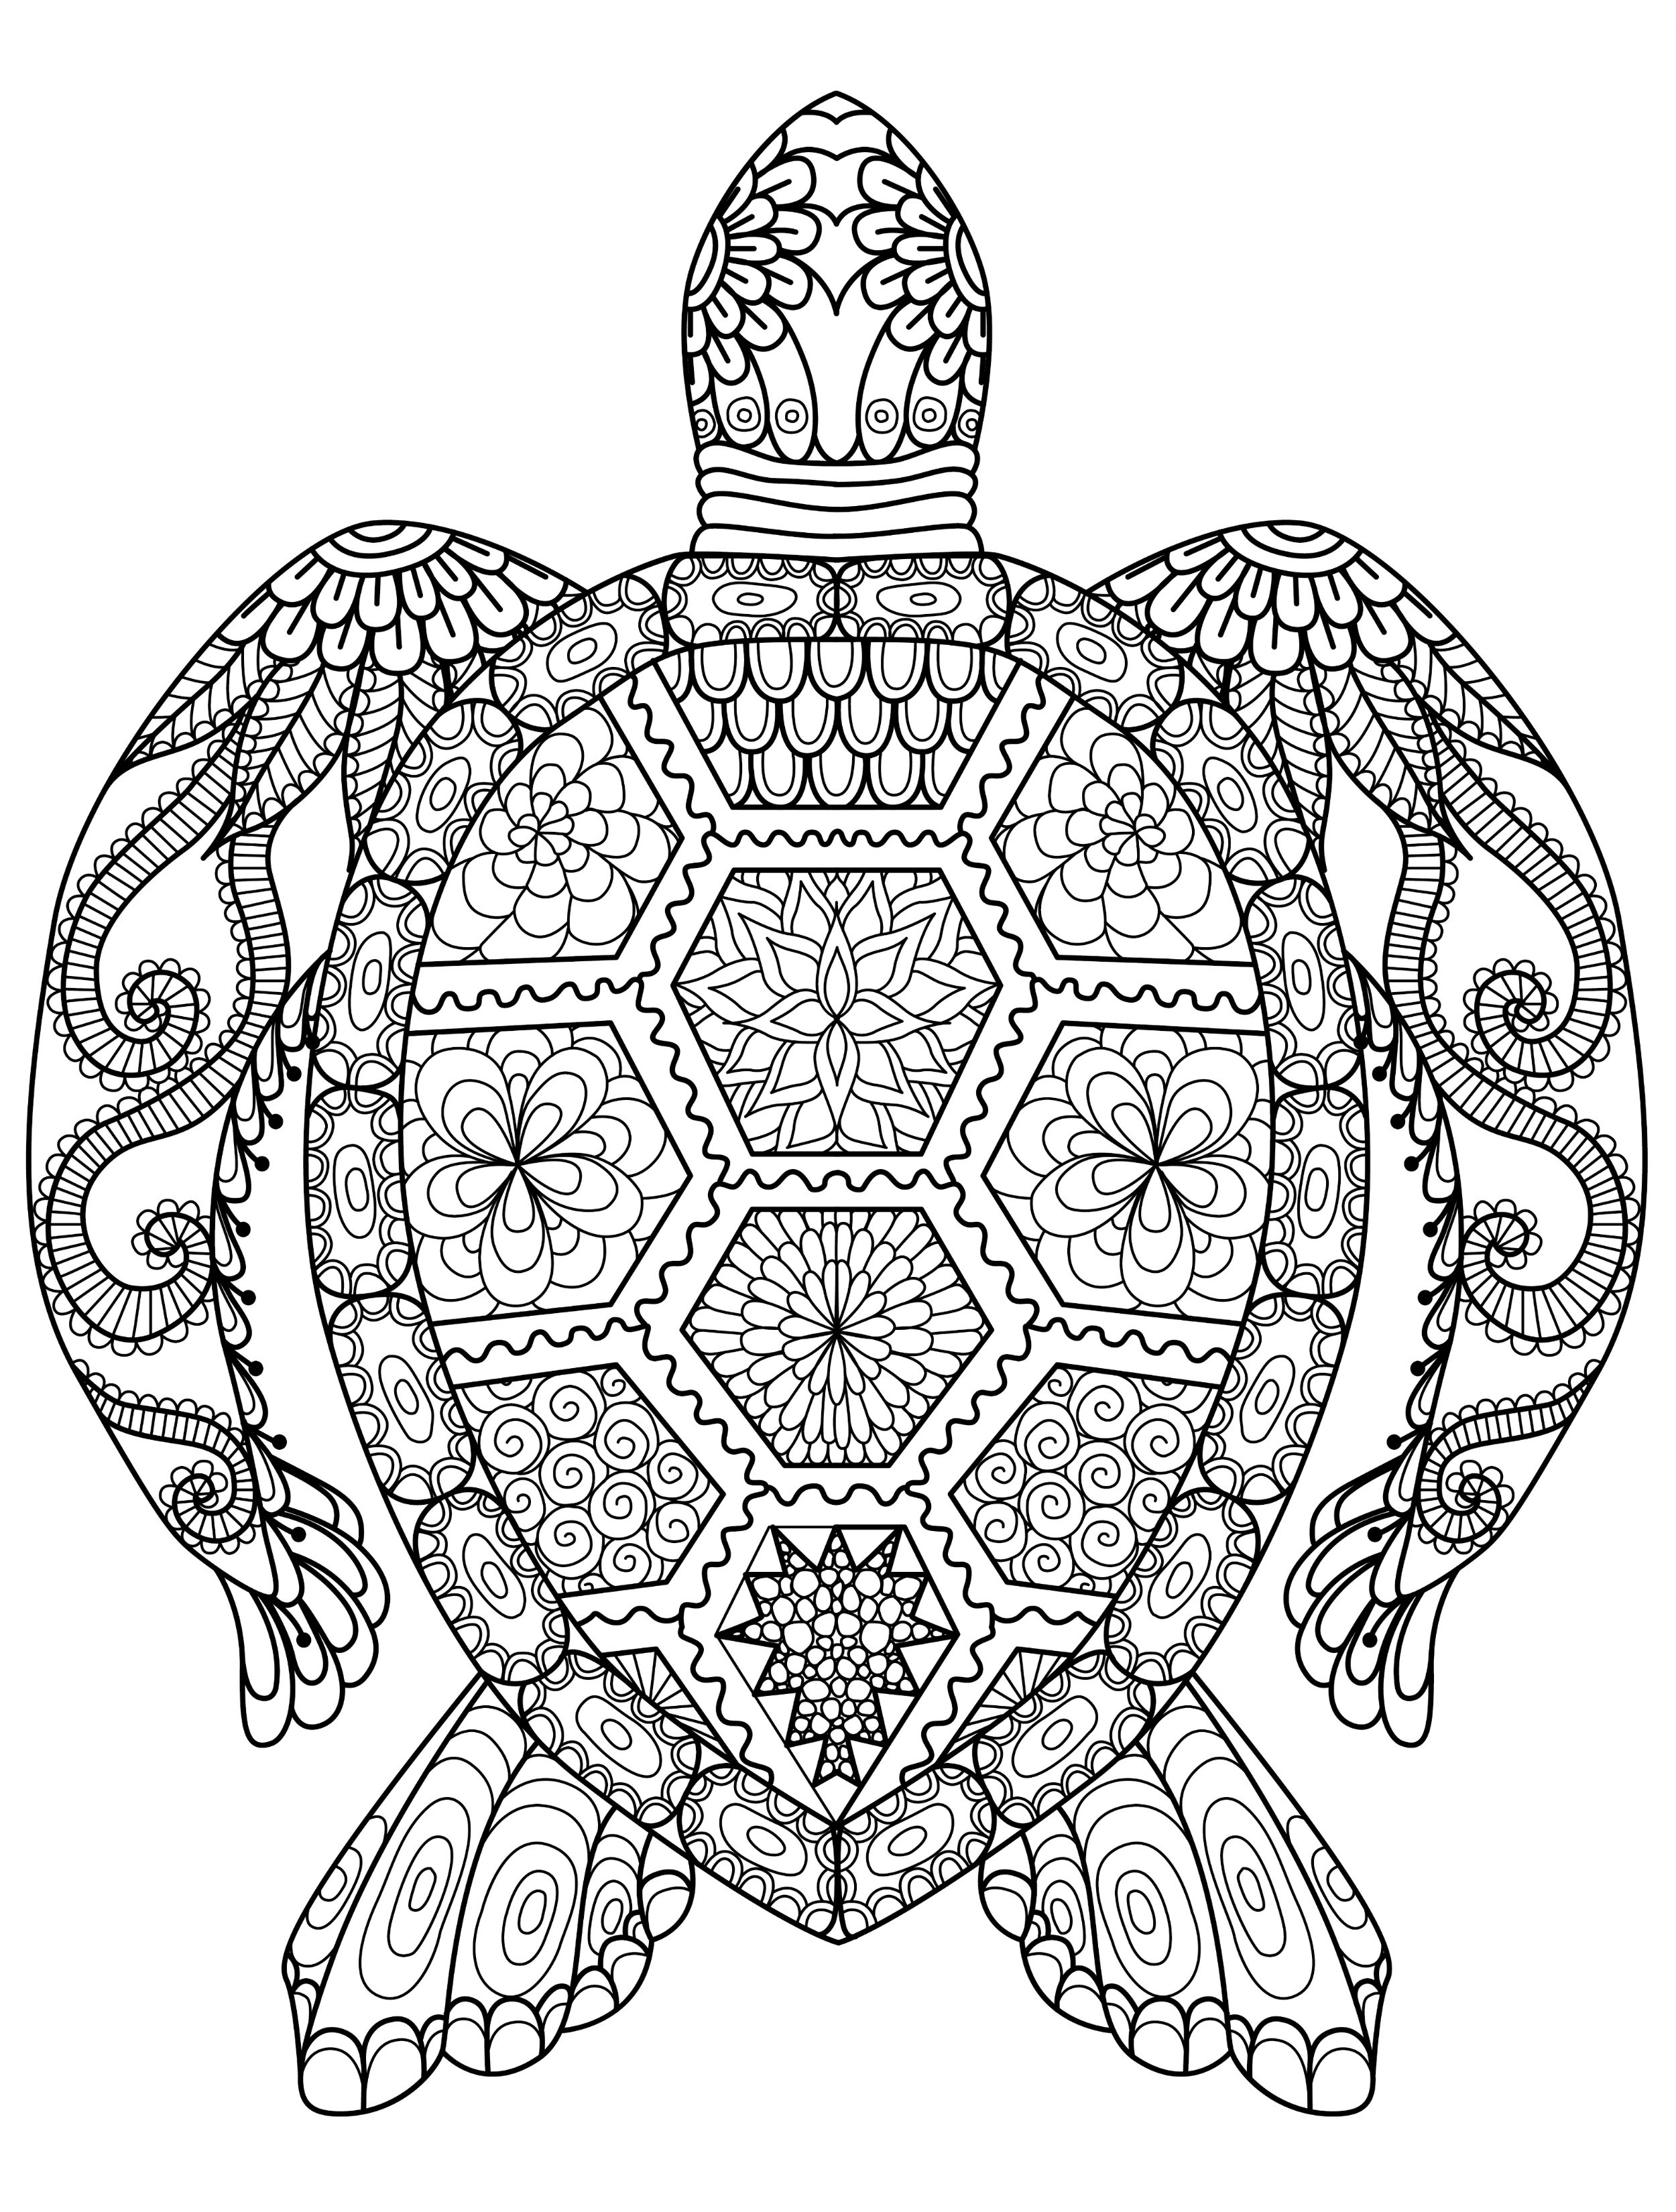 pictures for coloring free printable frozen coloring pages for kids best pictures for coloring